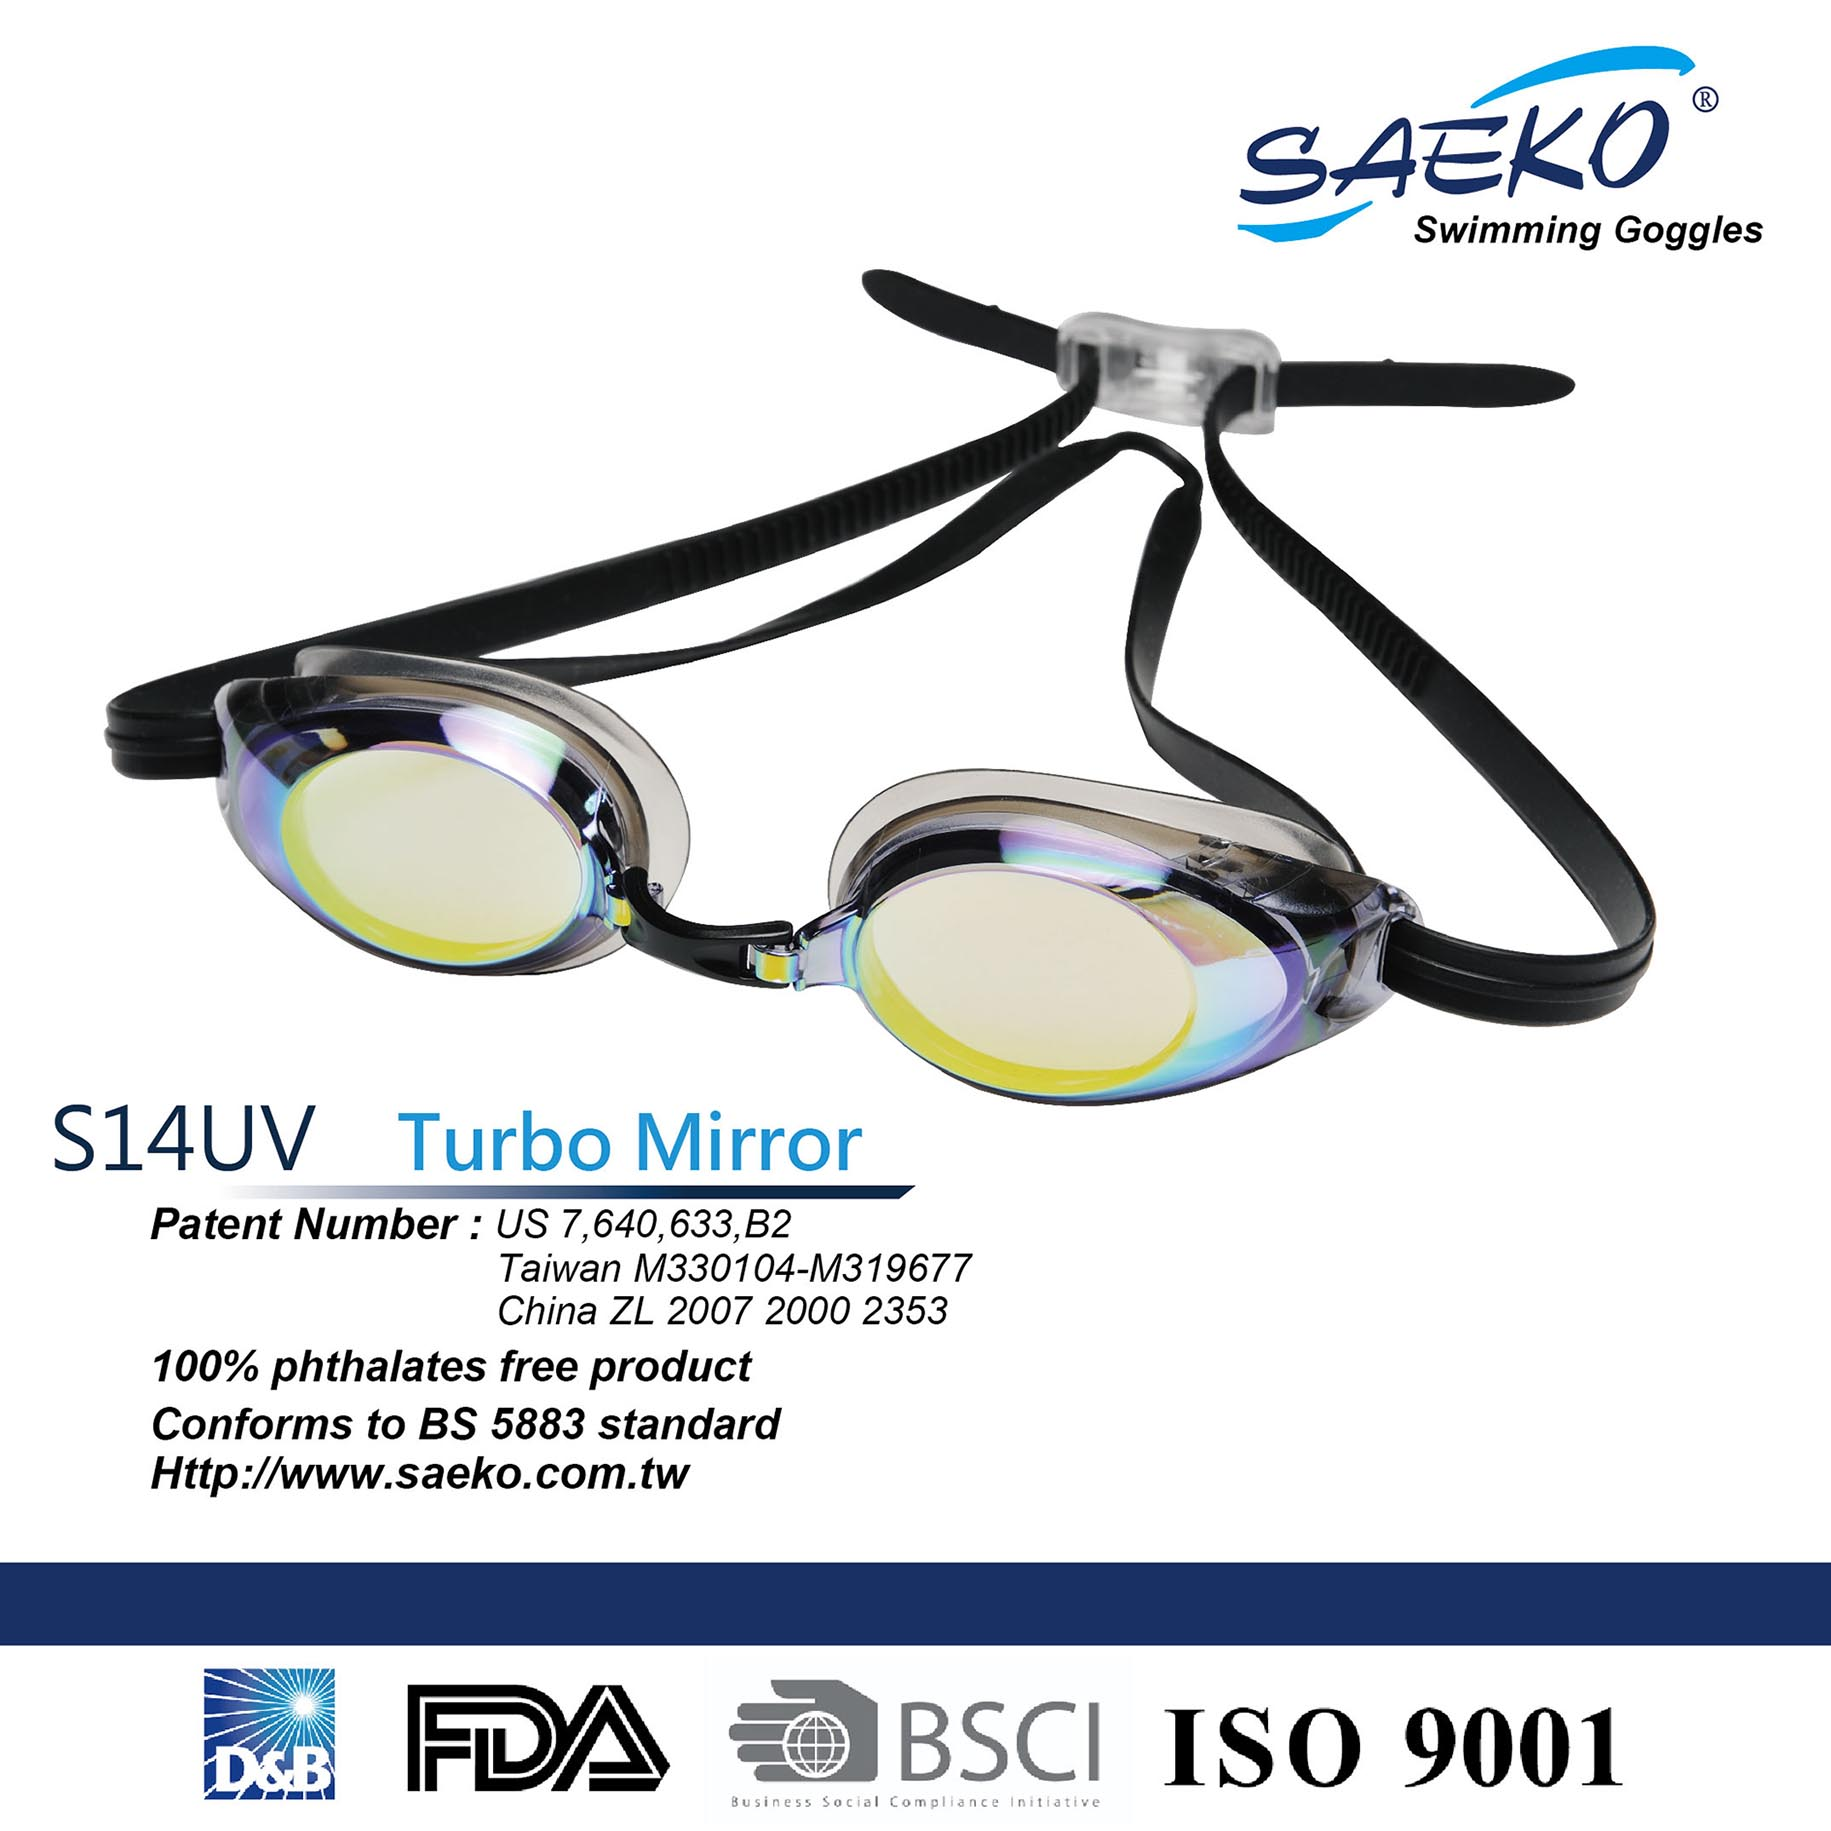 136a0a2fac53 Taiwan Best-selling Racing SWIMMING GOGGLES S14UV Turbo Mirror-Color ...